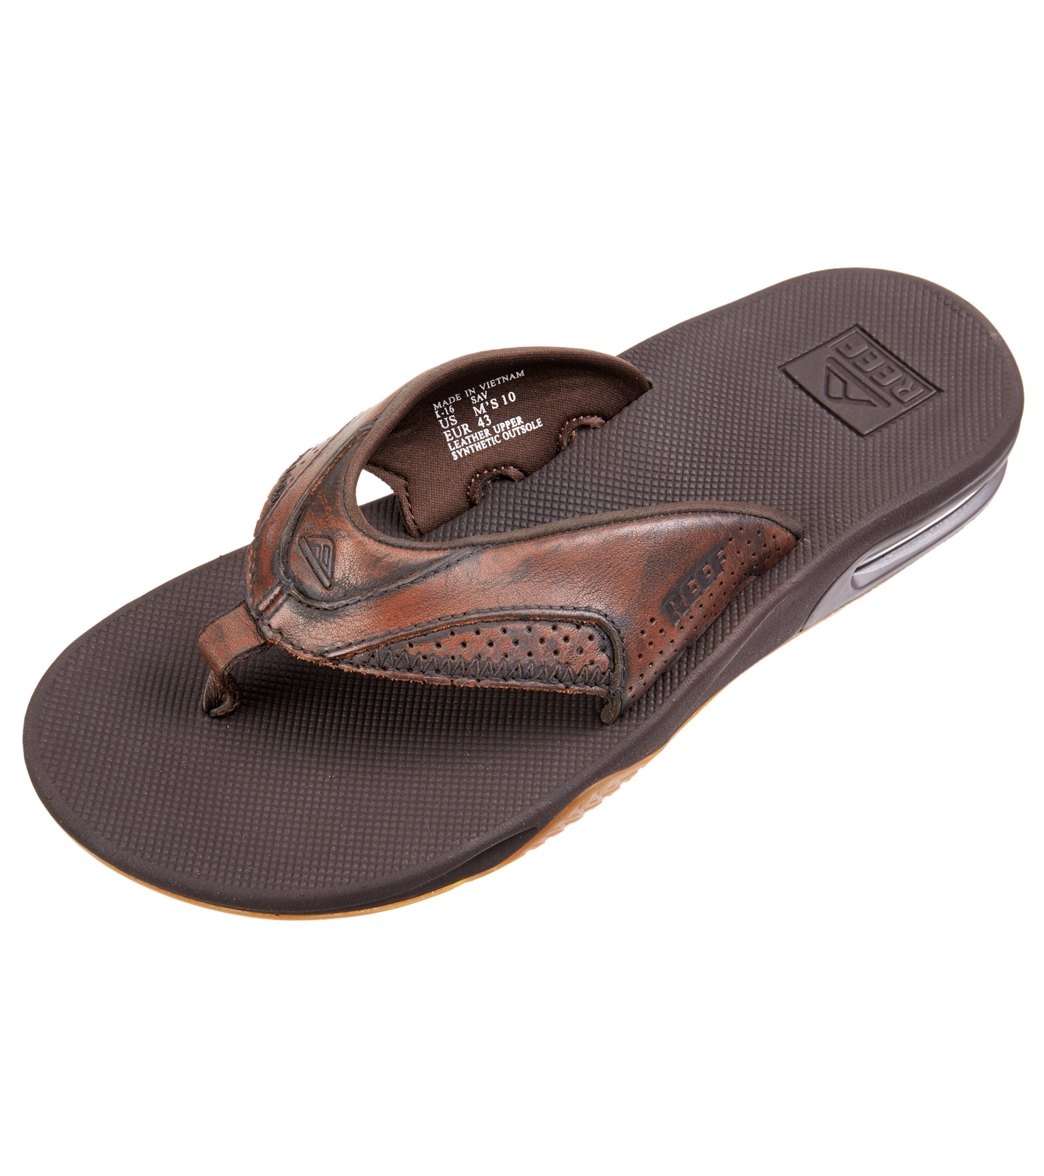 371a1a4f210 Reef Men s Leather Fanning Lux Flip Flop at SwimOutlet.com - Free ...